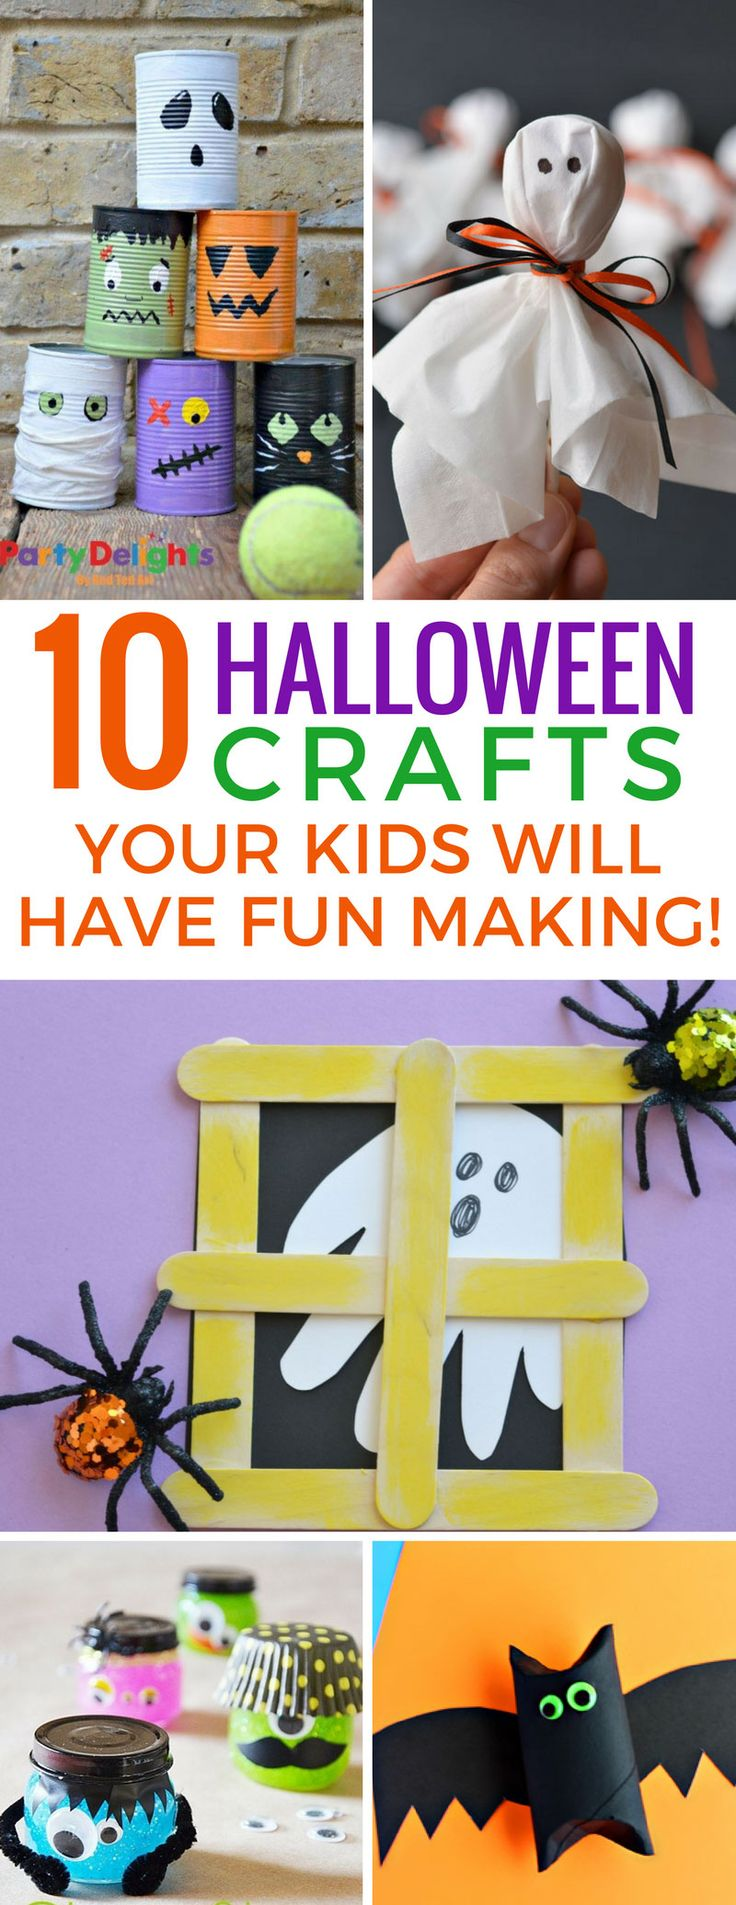 These easy Halloween crafts for kids are super fun and we can't wait to get started! Thanks for sharing!